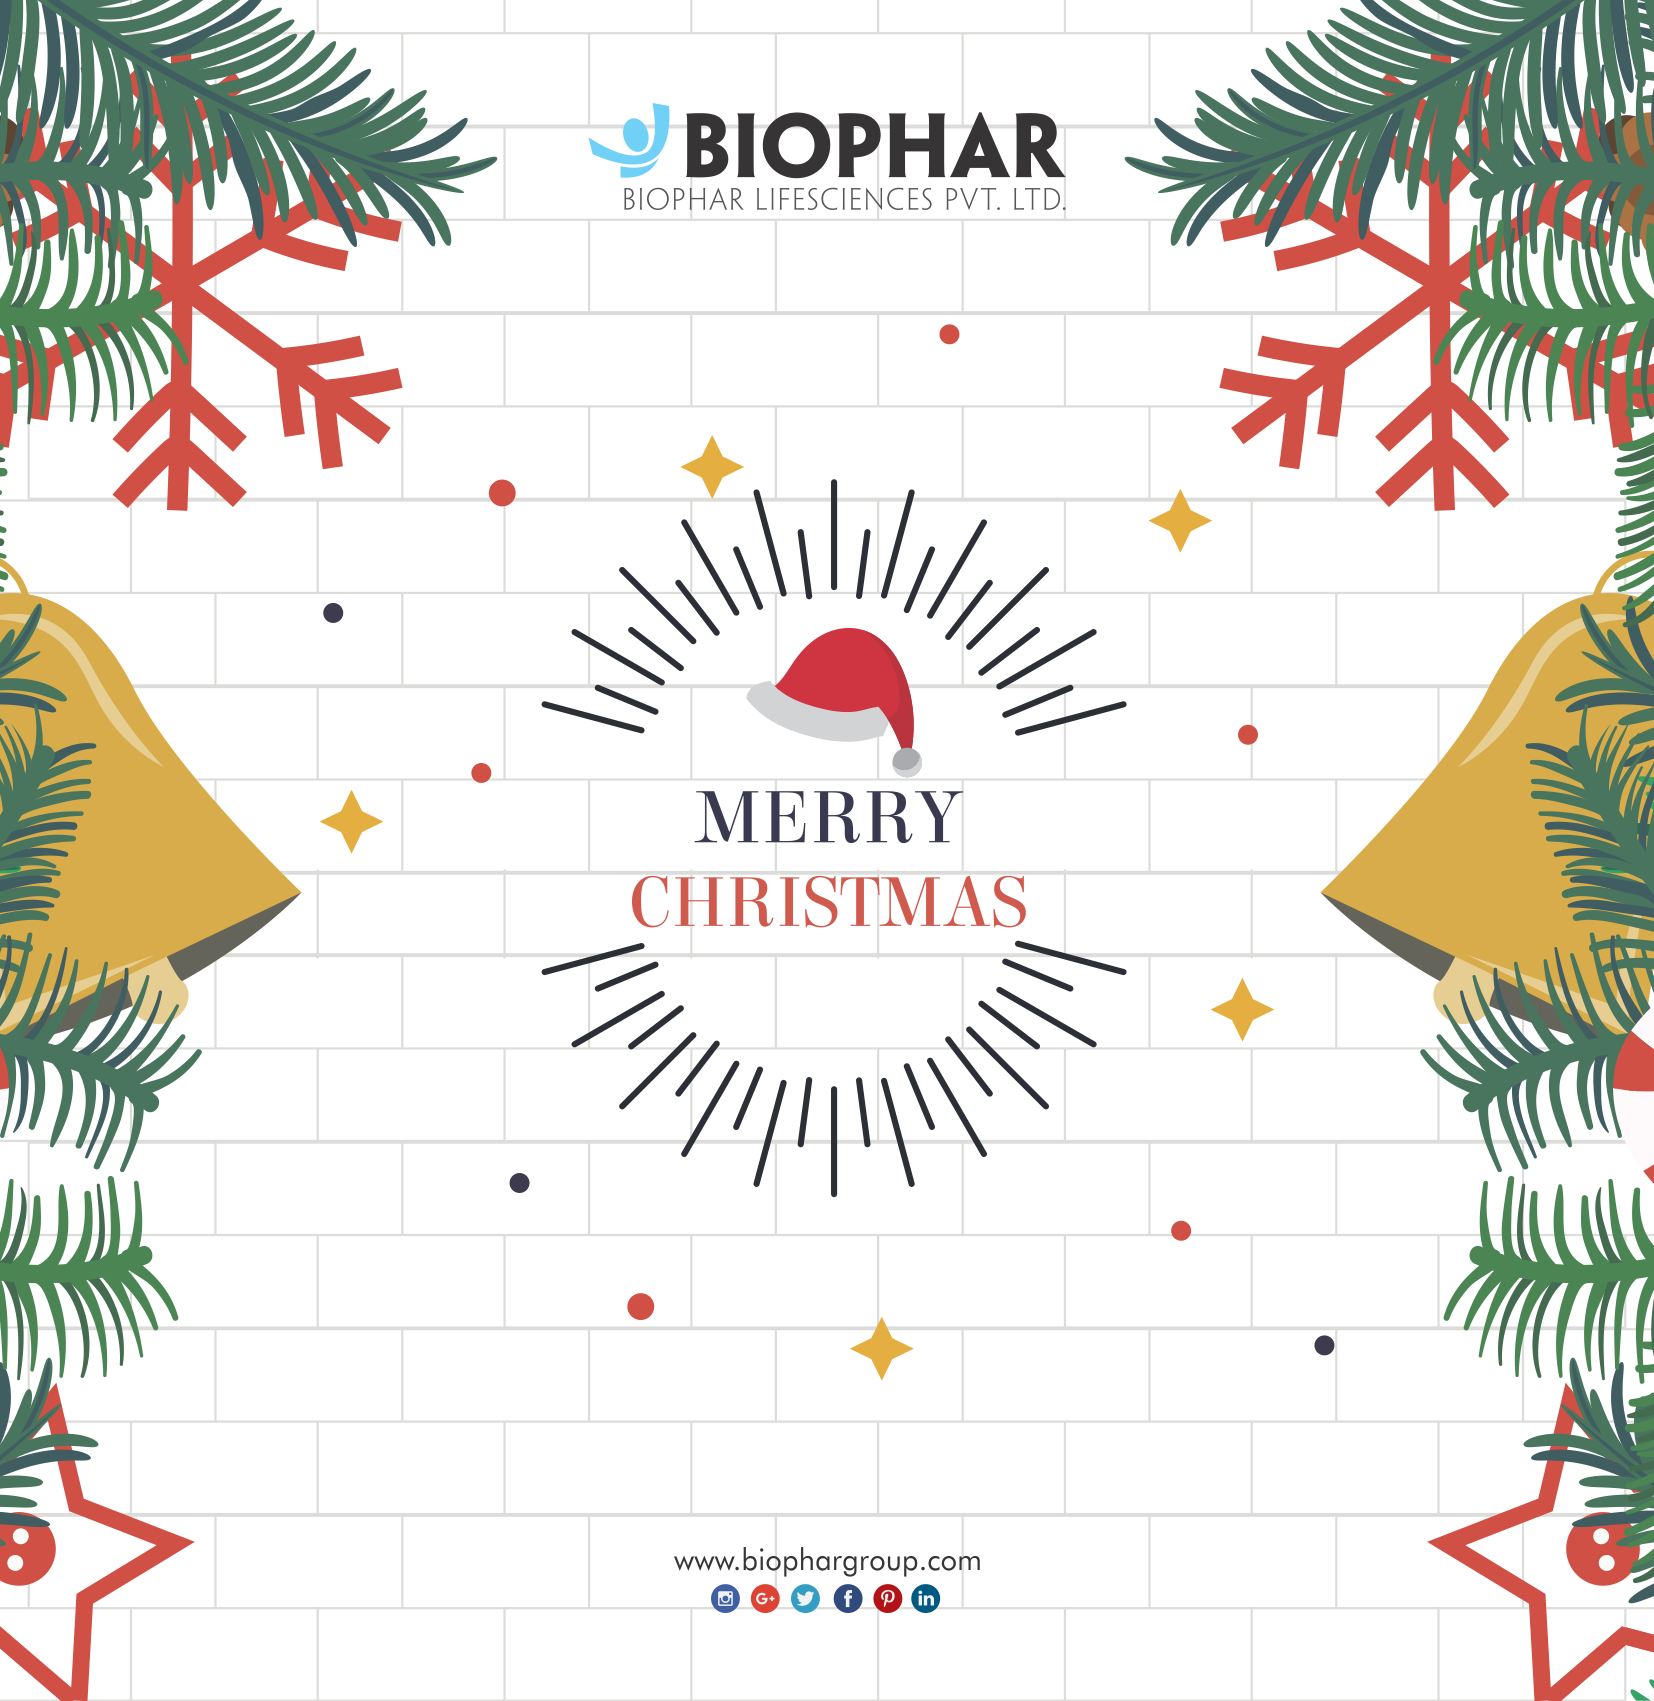 We wish you a Merry Christmas And a Happy New Year. #BiopharGroup ...